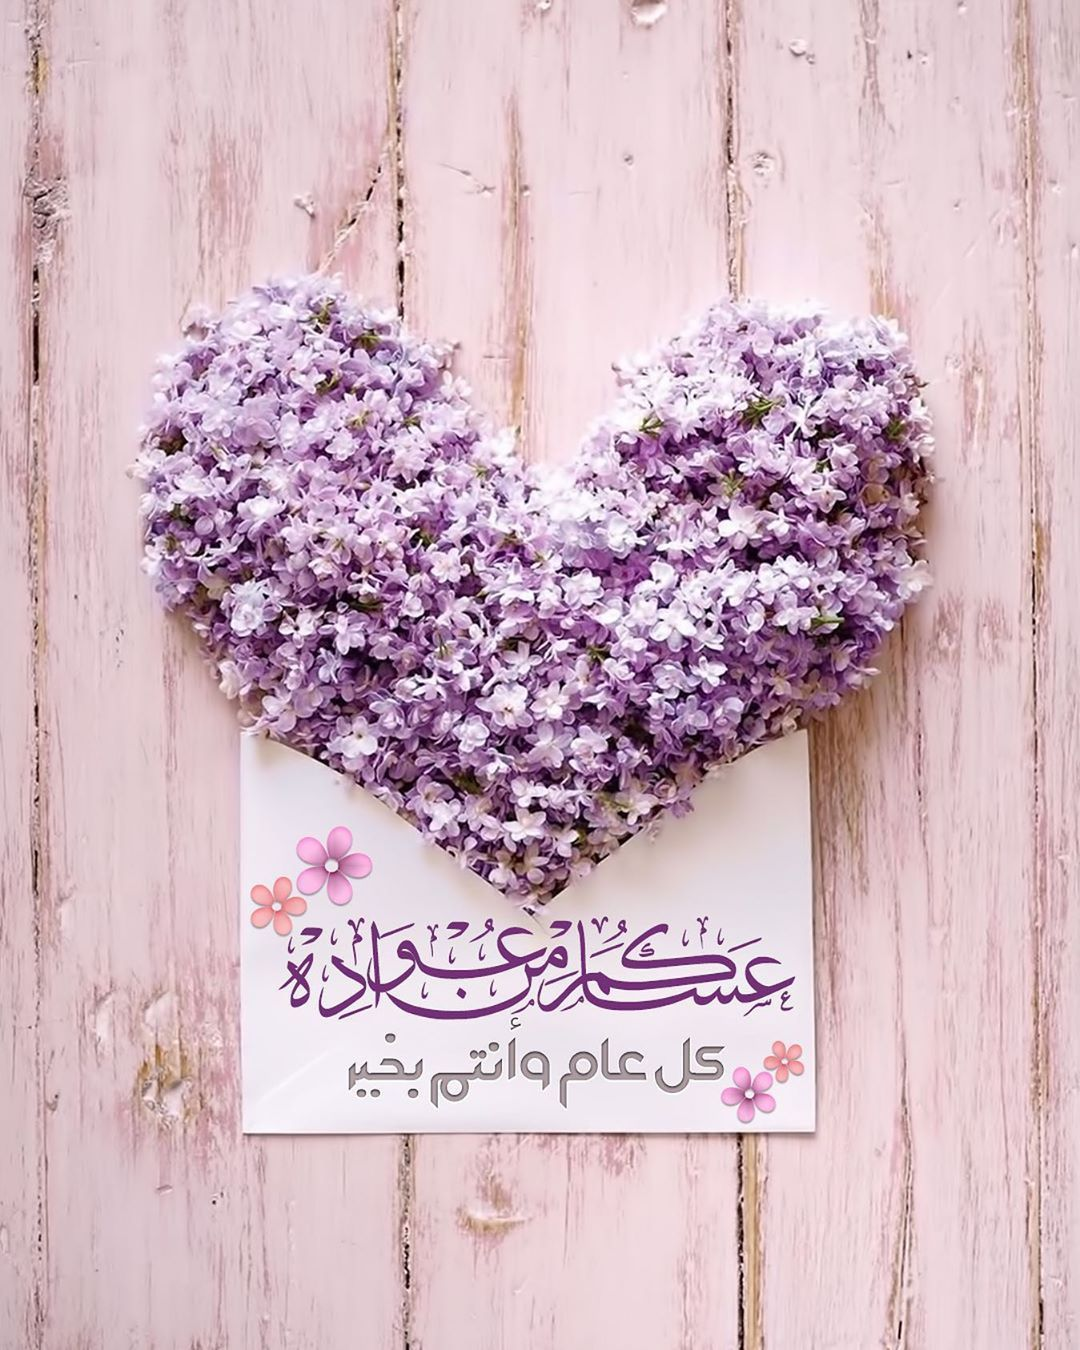 2 682 Likes 26 Comments P E A R L A Pearla0203 On Instagram ت صاميمي العيد من ه نا عيد Rose Gift Islamic Gifts Islamic Events